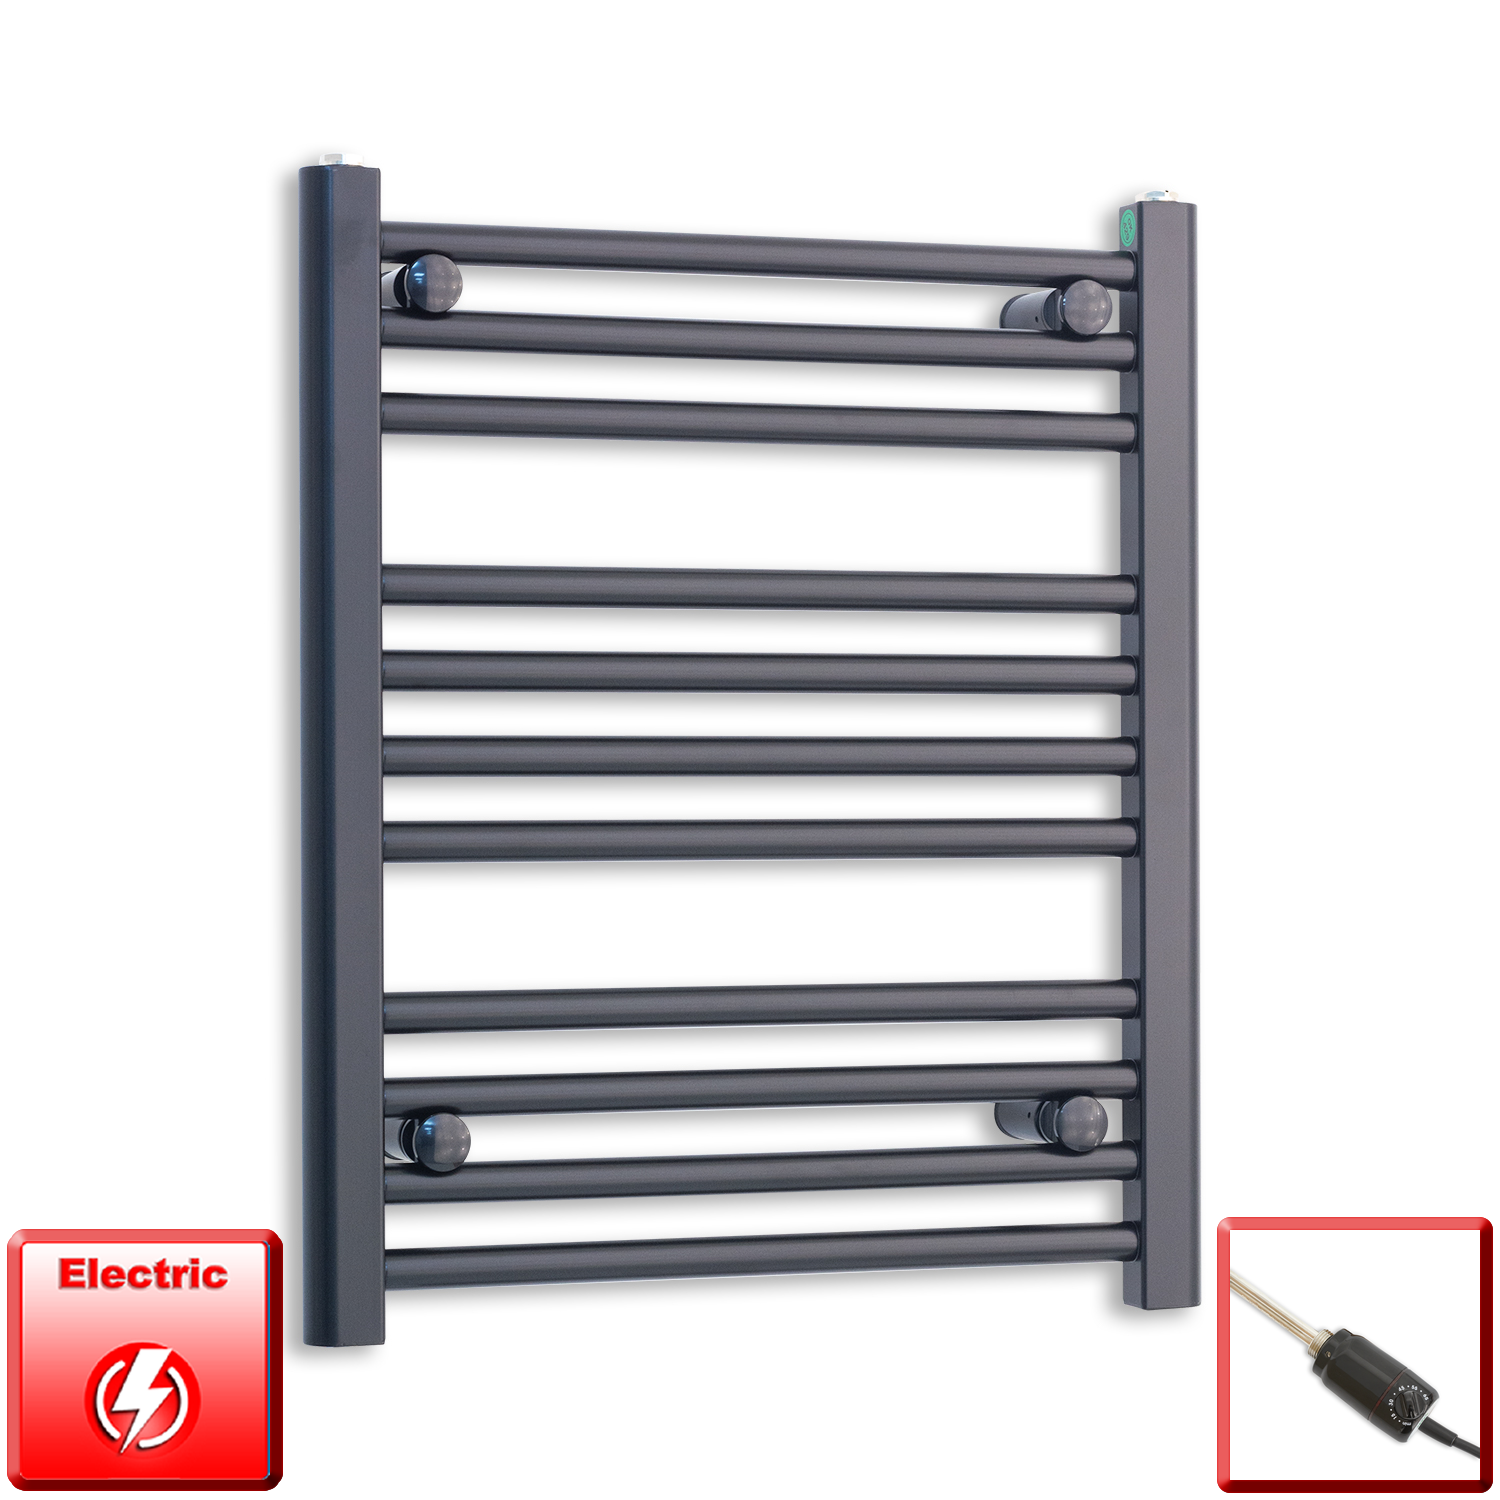 500mm Wide 600mm High Flat Black Pre-Filled Electric Heated Towel Rail Radiator HTR,GT Thermostatic